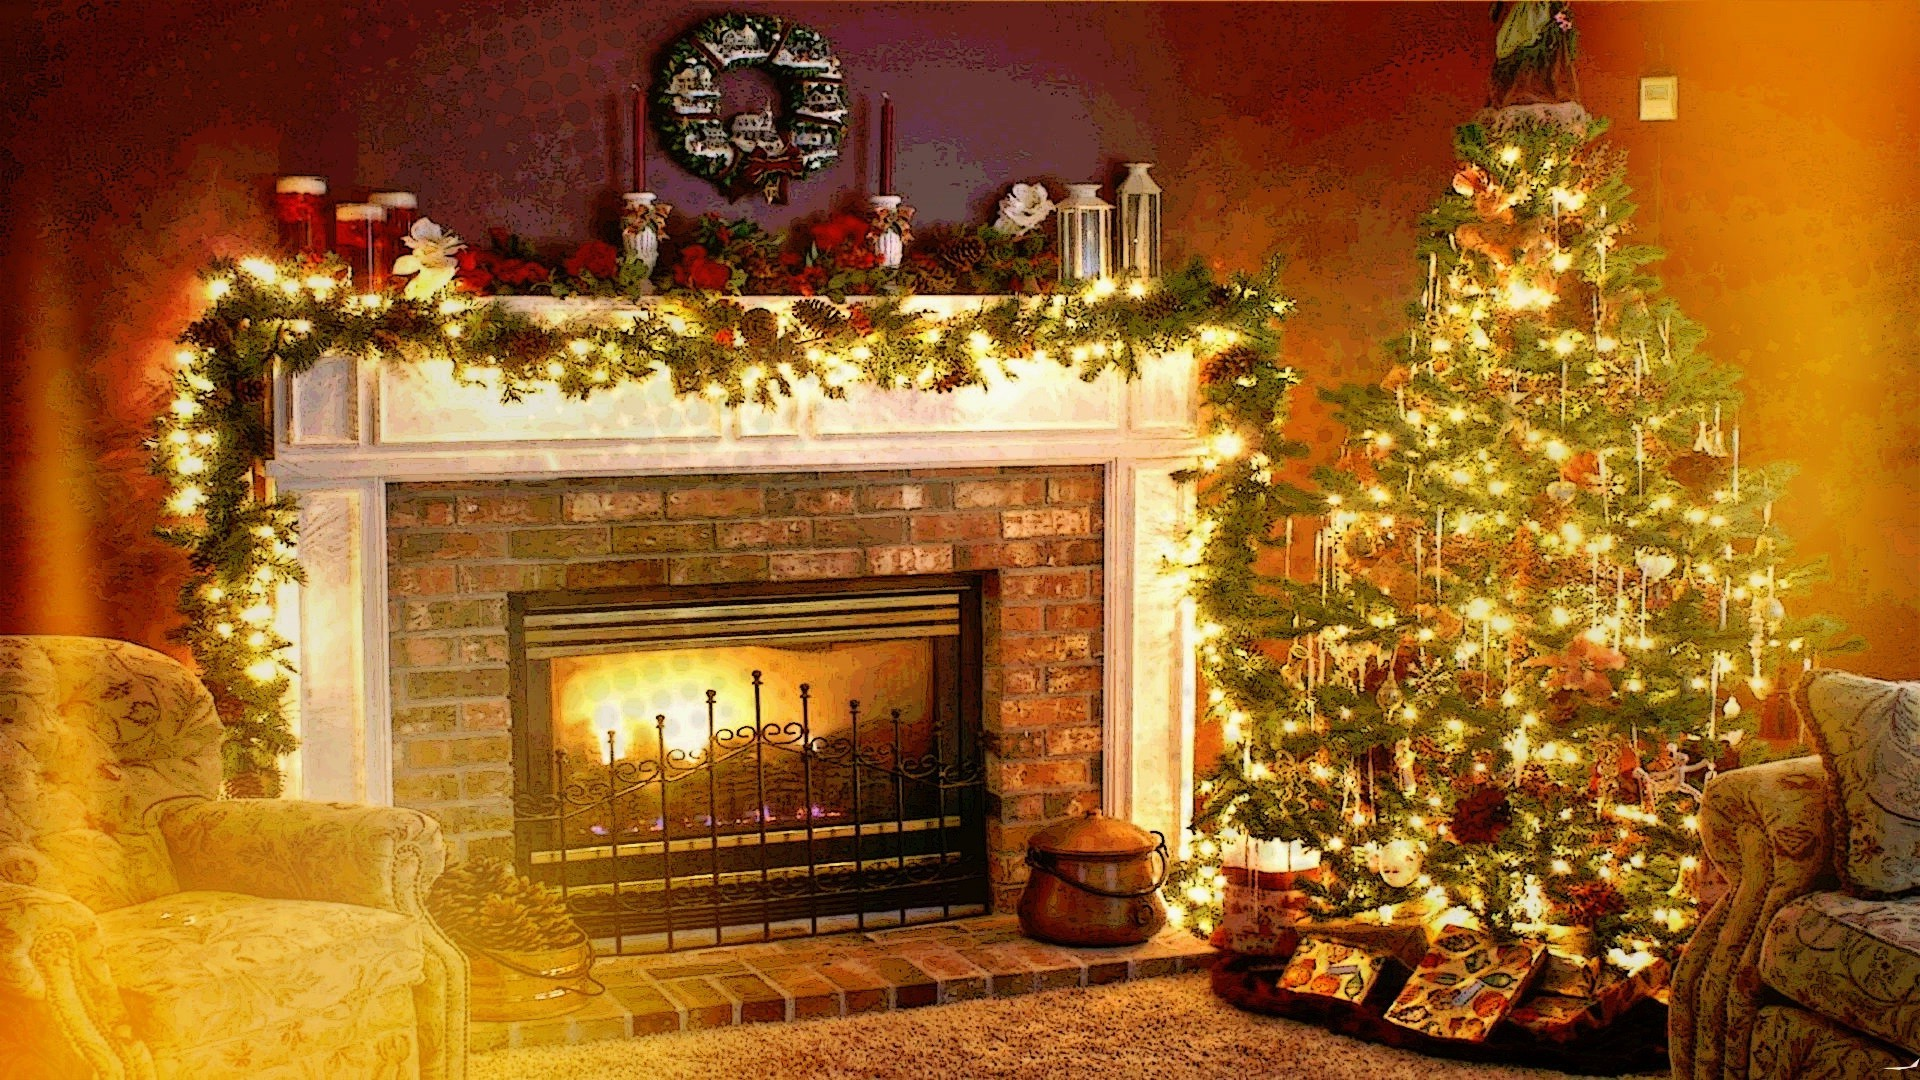 christmas fireplace wallpaper ·①